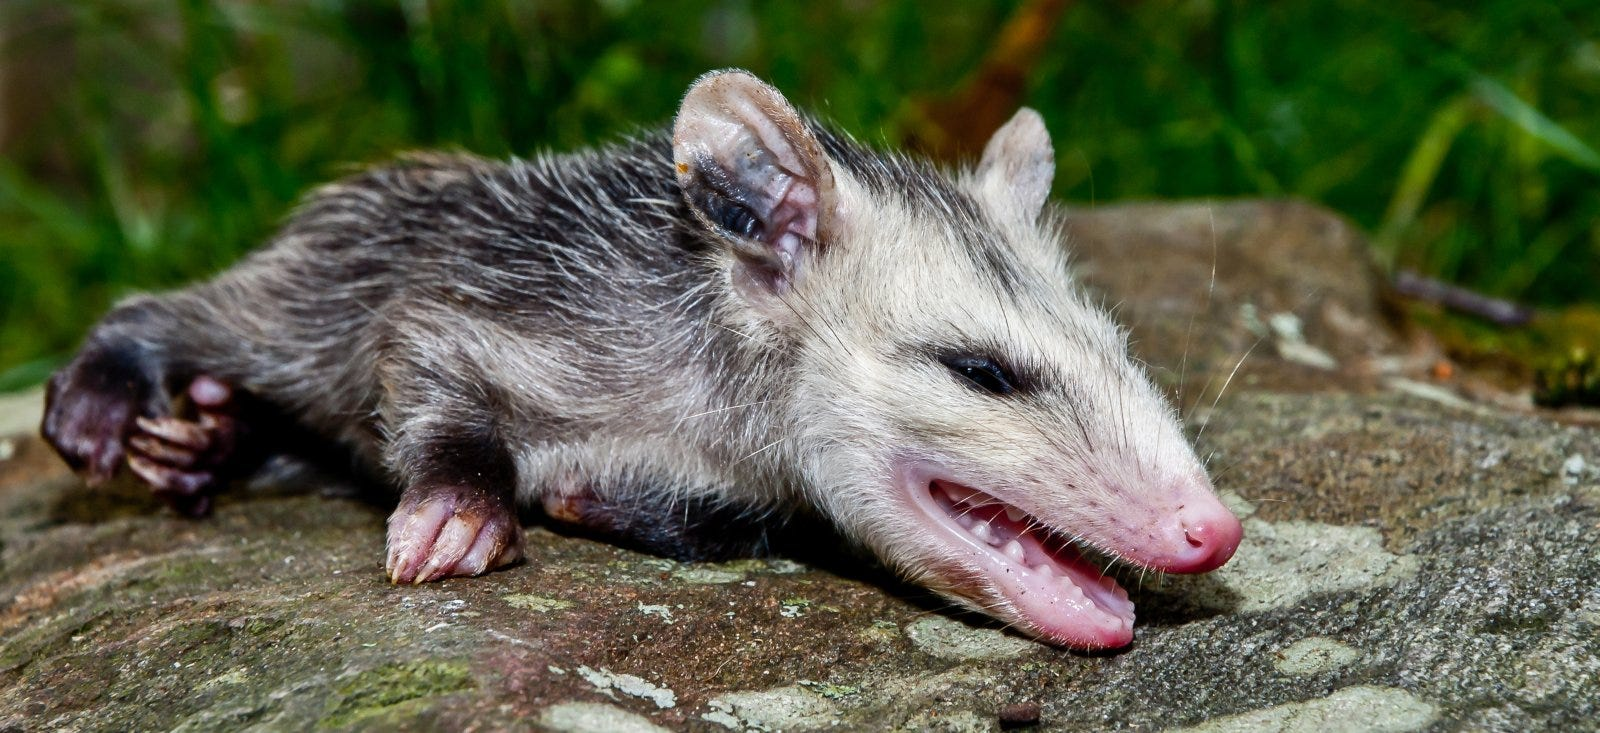 A young Opossum playing dead in the garden